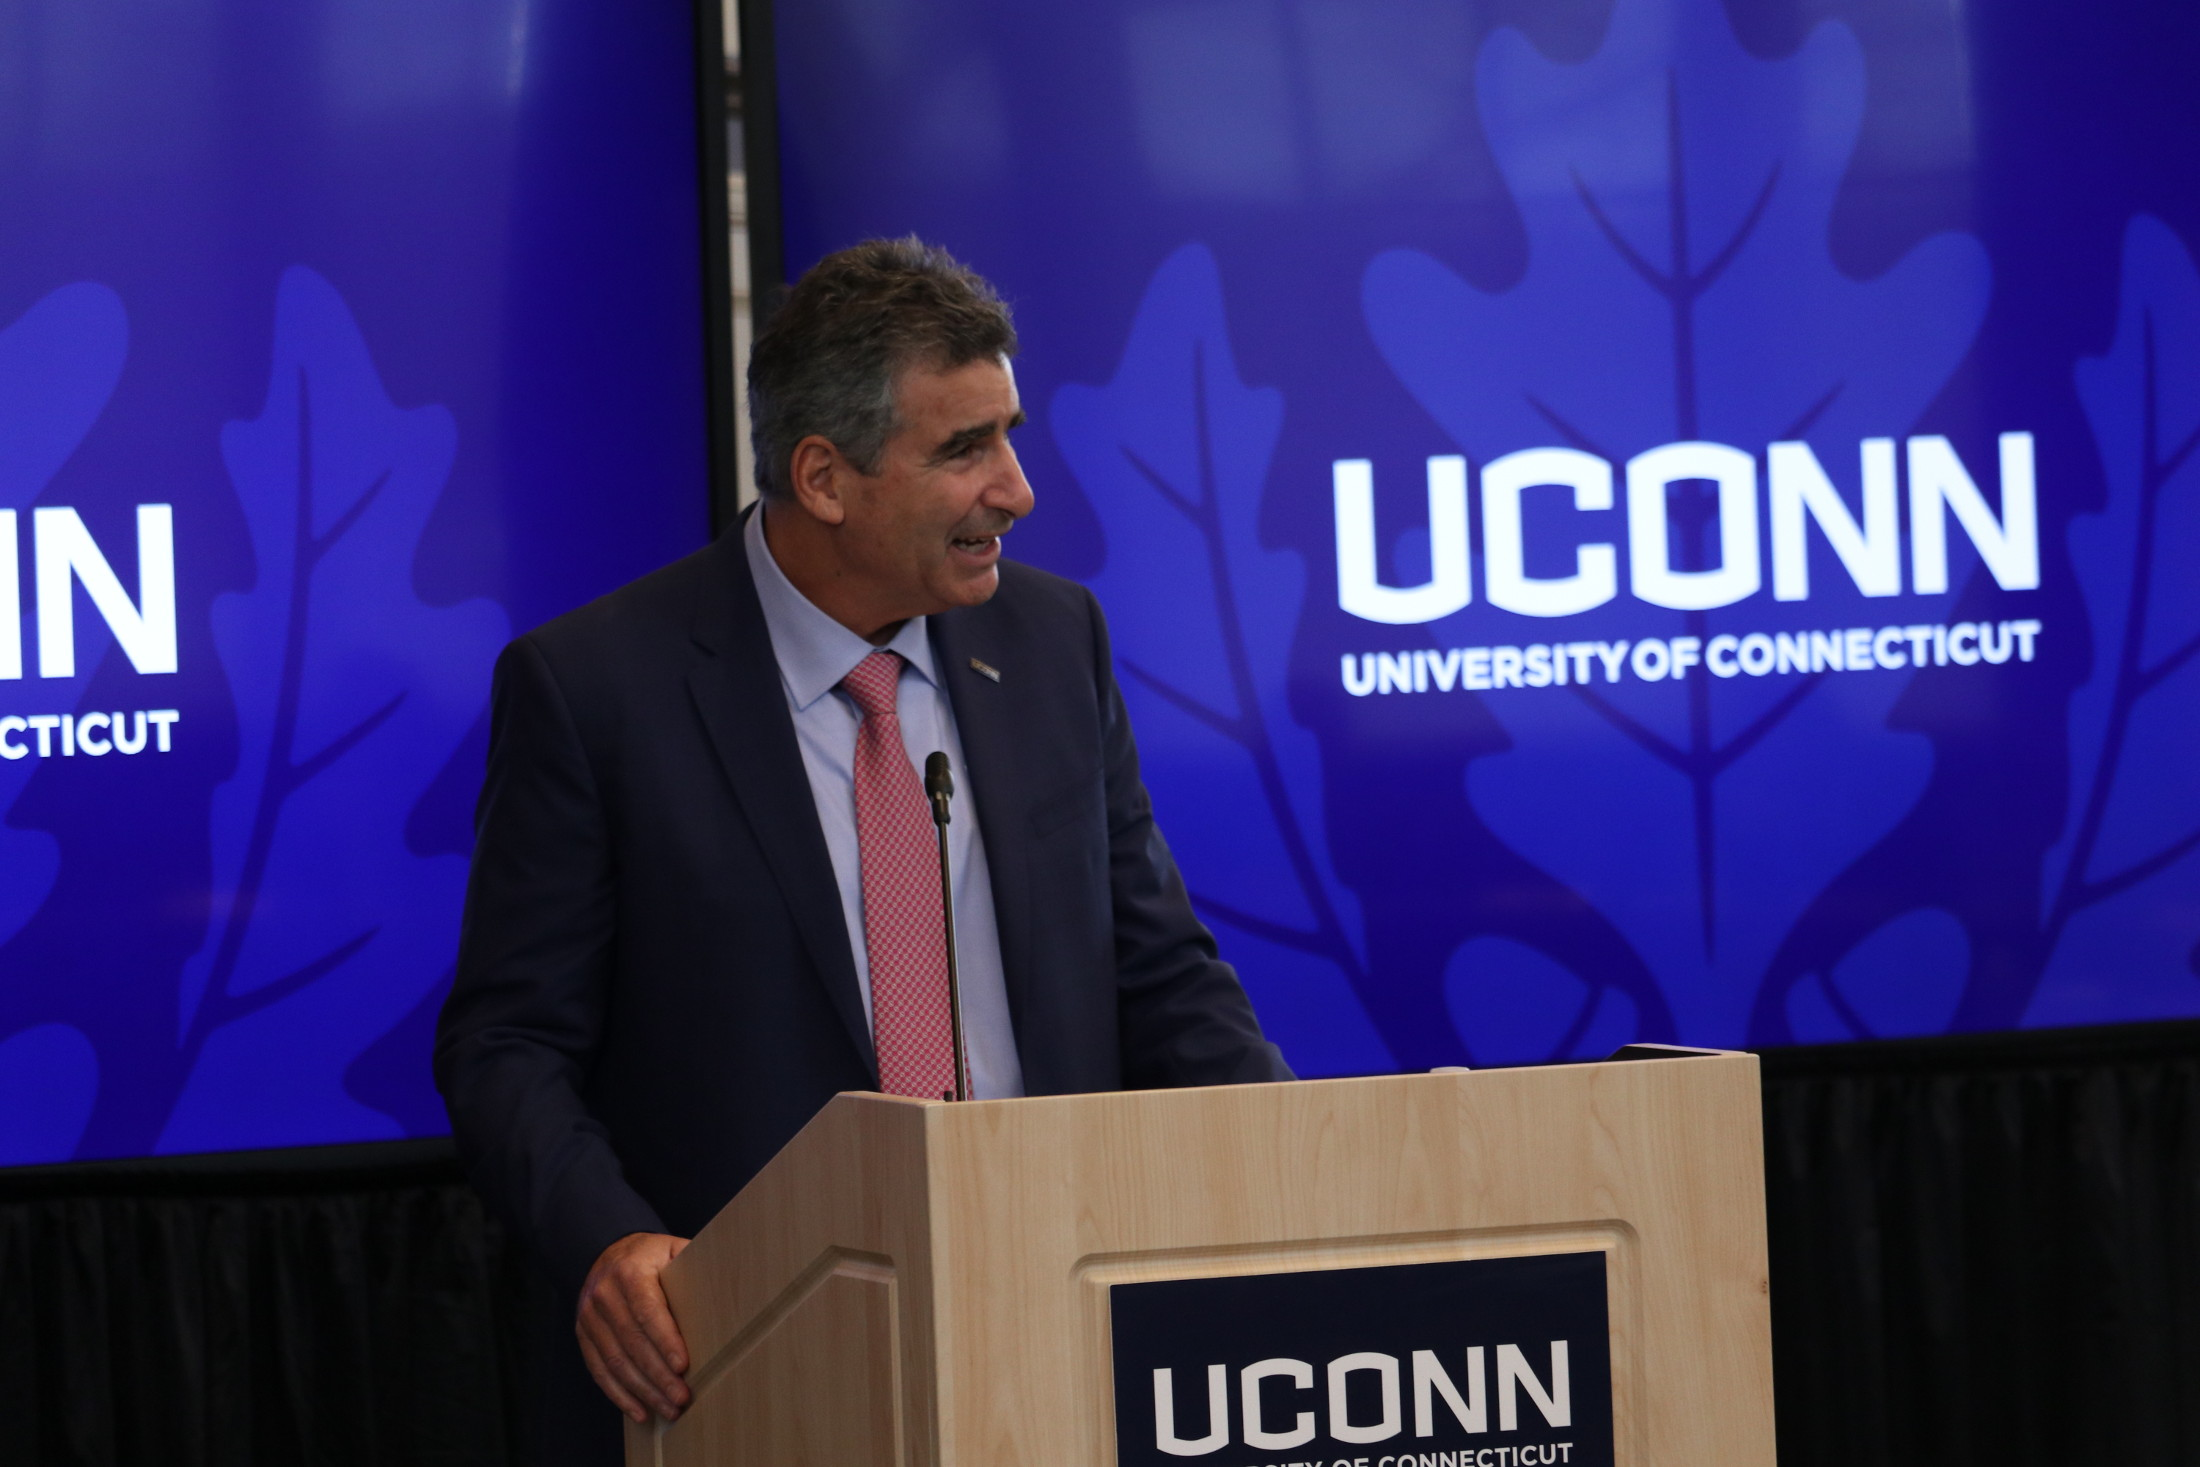 New UConn president Thomas Katsouleas takes the podium at an event earlier this semester (Judah Shingleton/The Daily Campus)